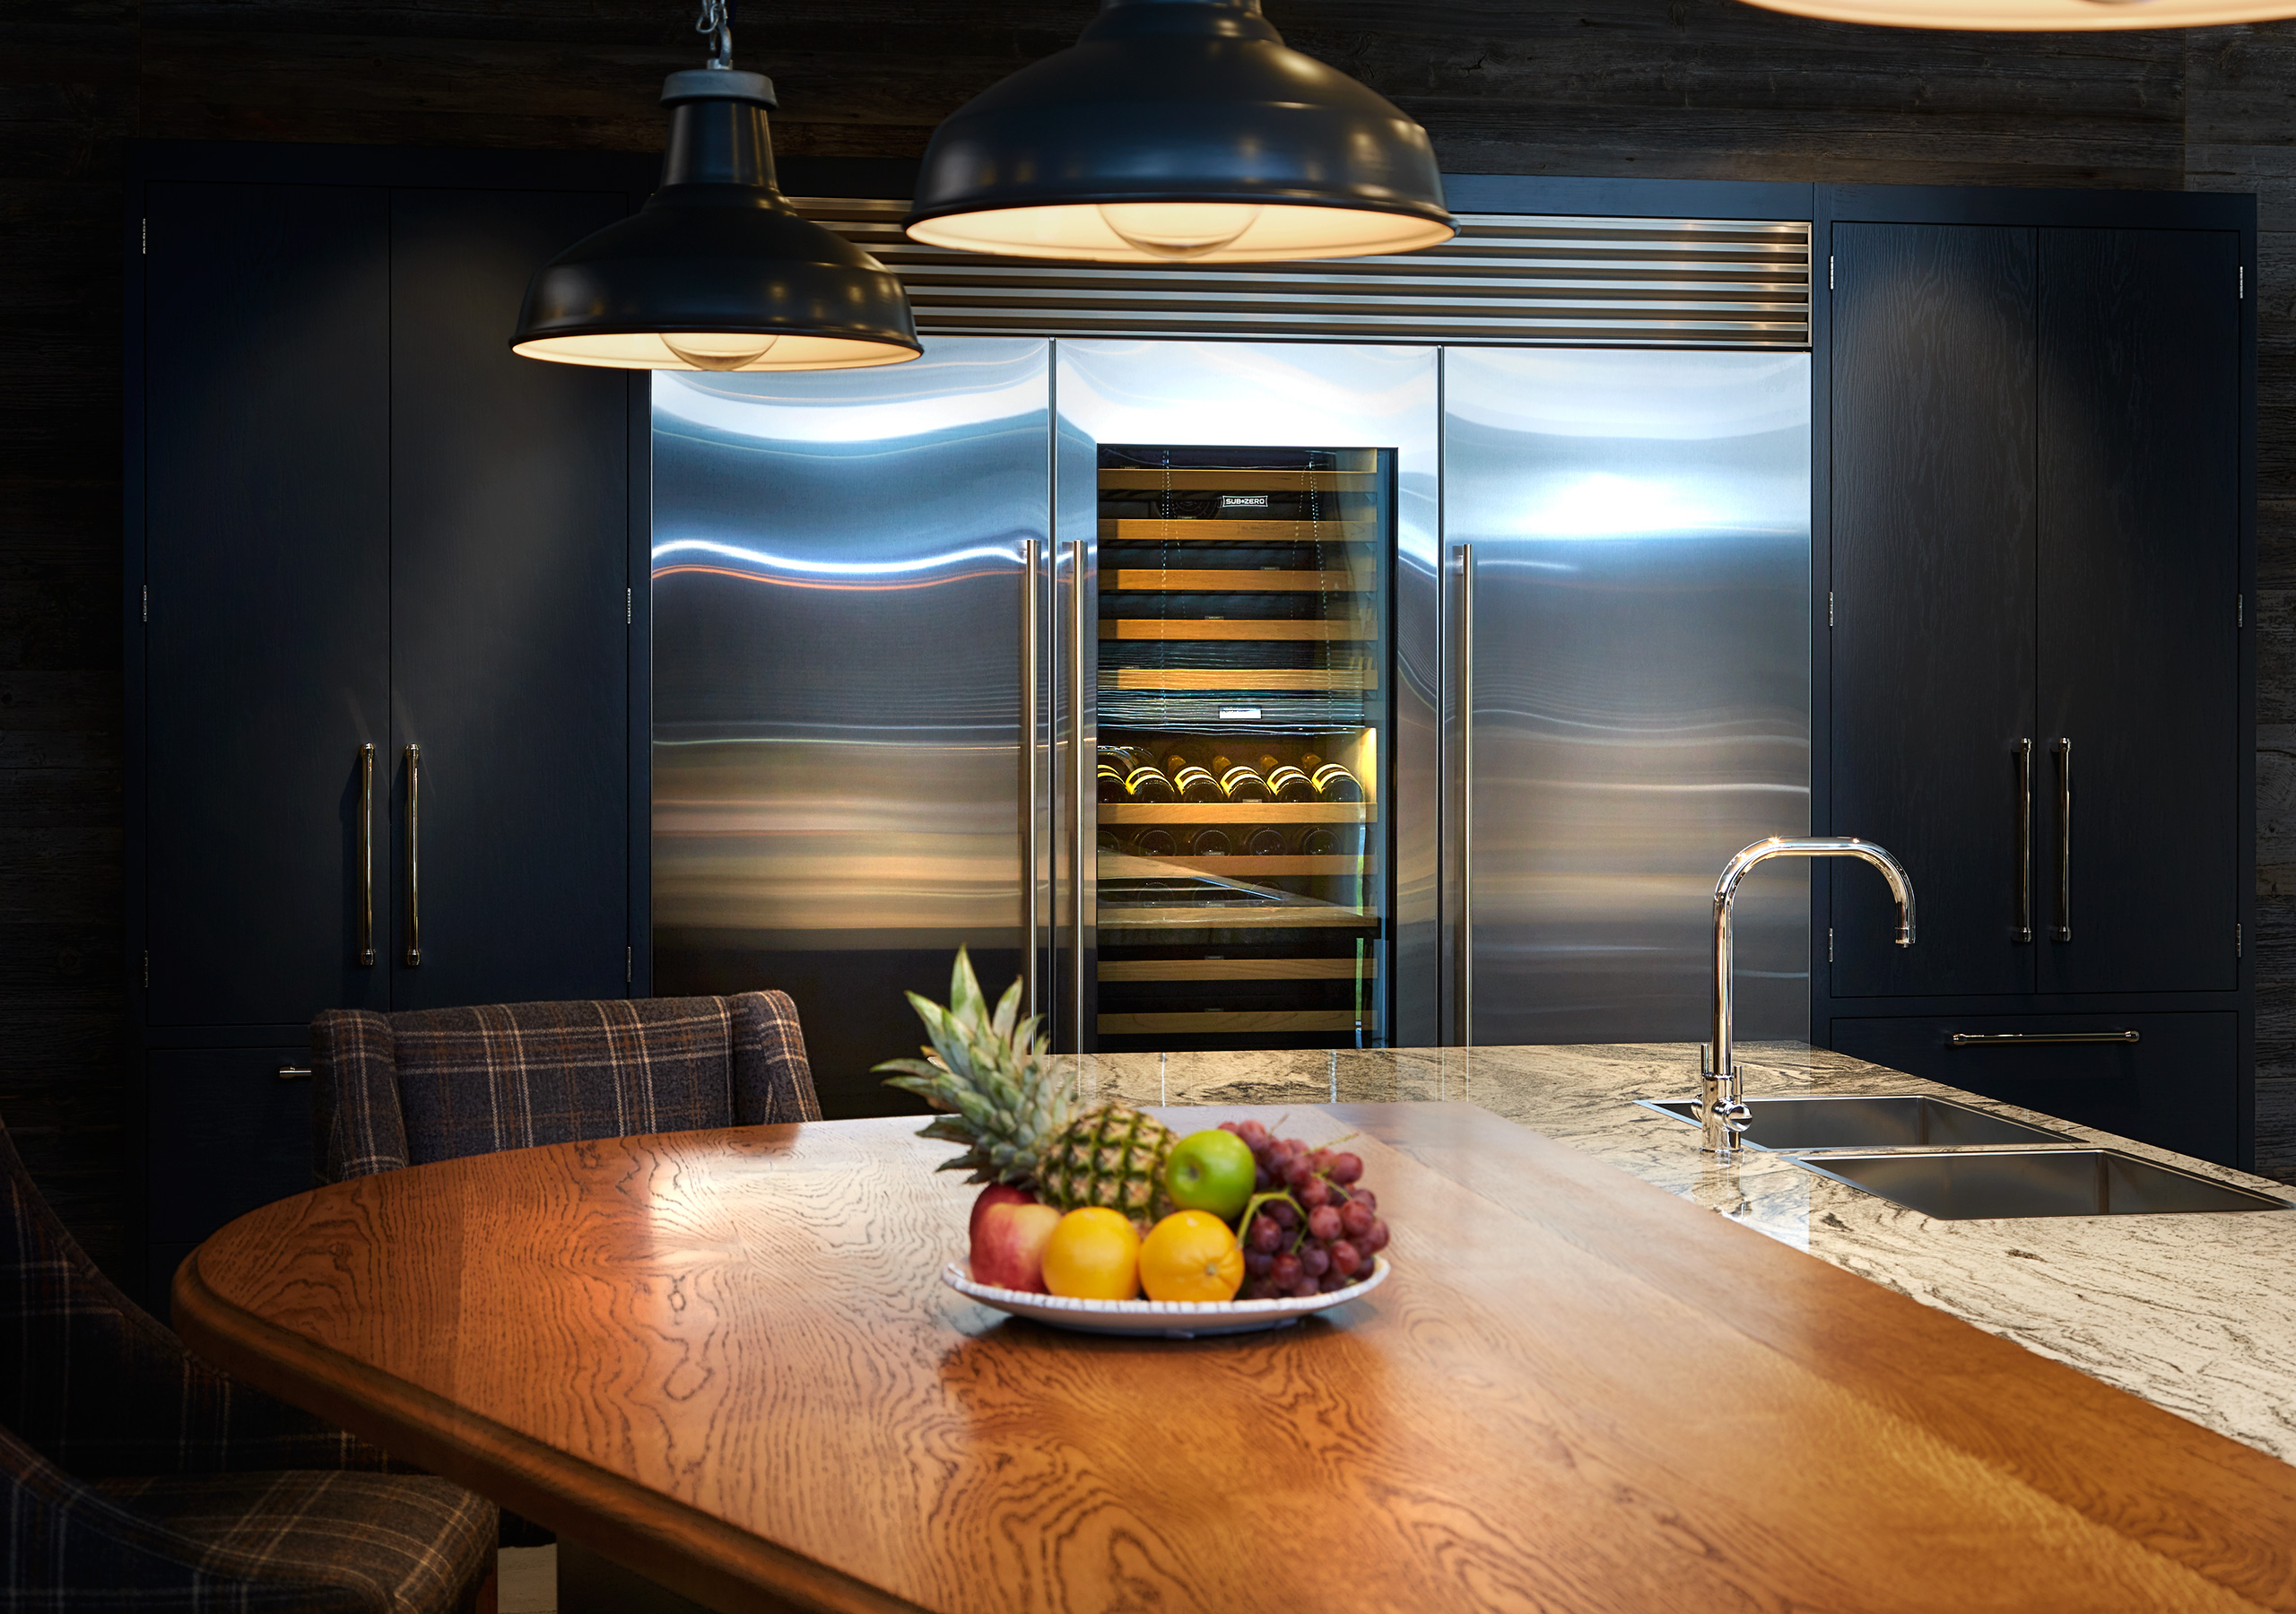 Home Page: Bespoke Kitchens From Yorkshire Based KC Design House